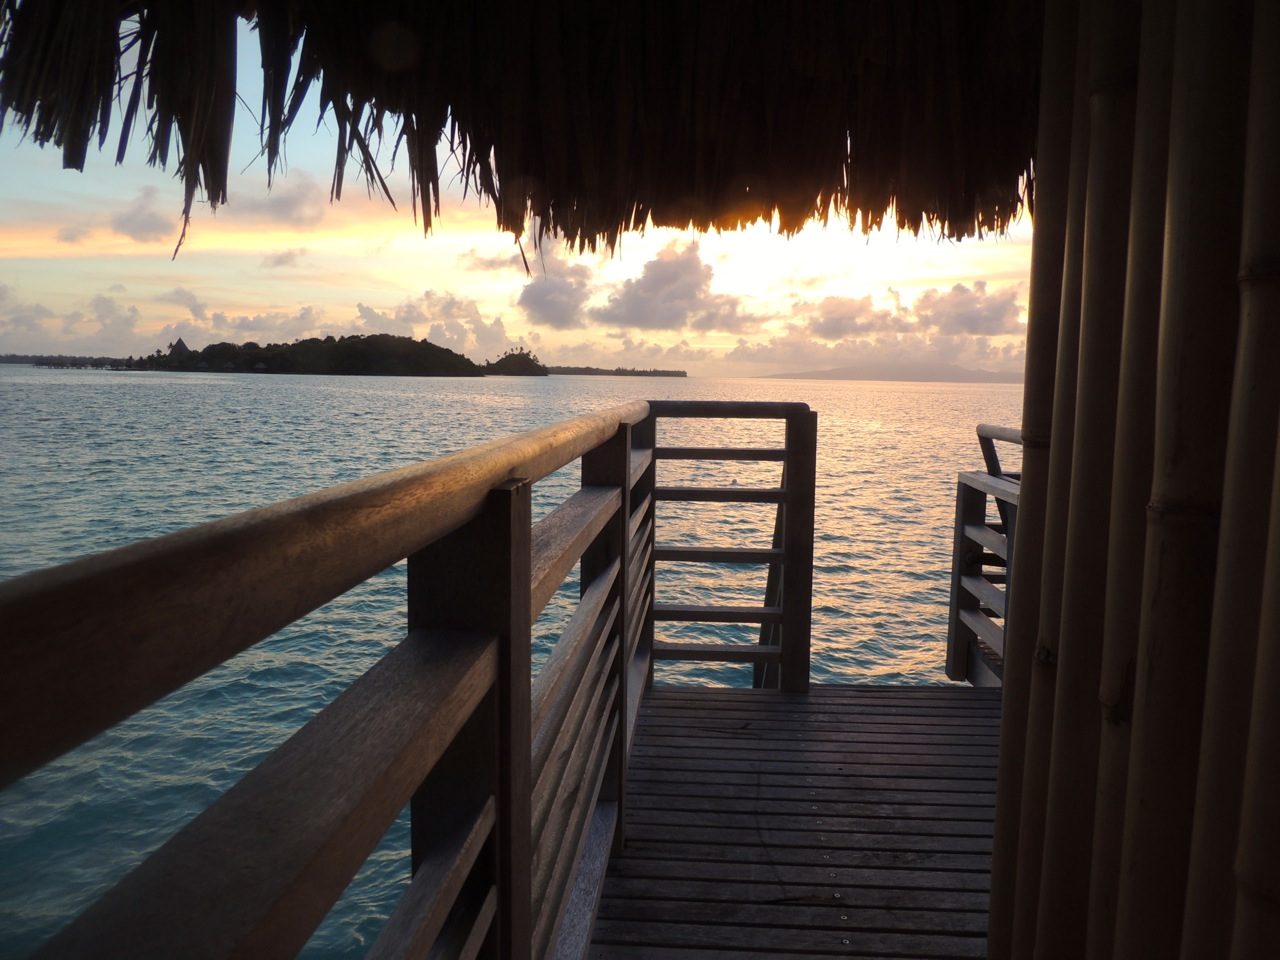 Sunrise view from our overwater bungalow.